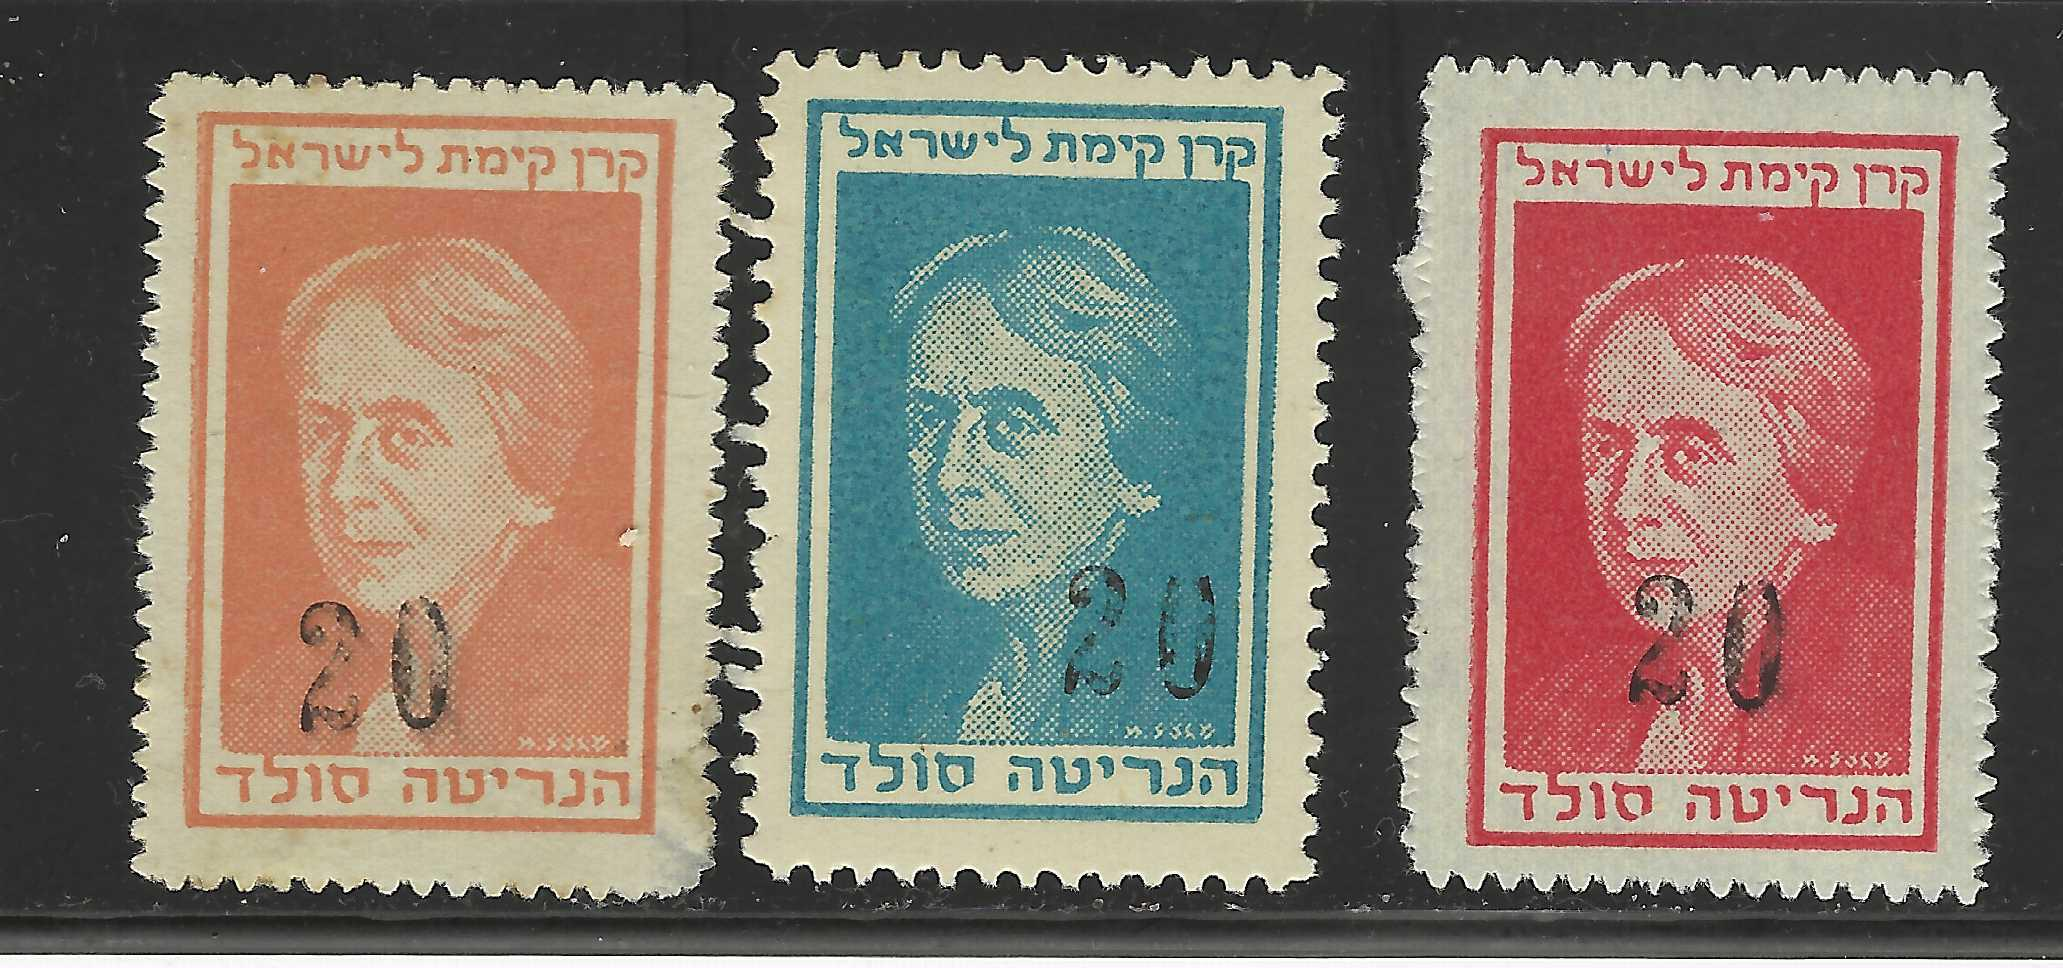 Lot 10 - judaica JNF labels & stamps -  Negev Holyland 94th Holyland Postal Bid Sale